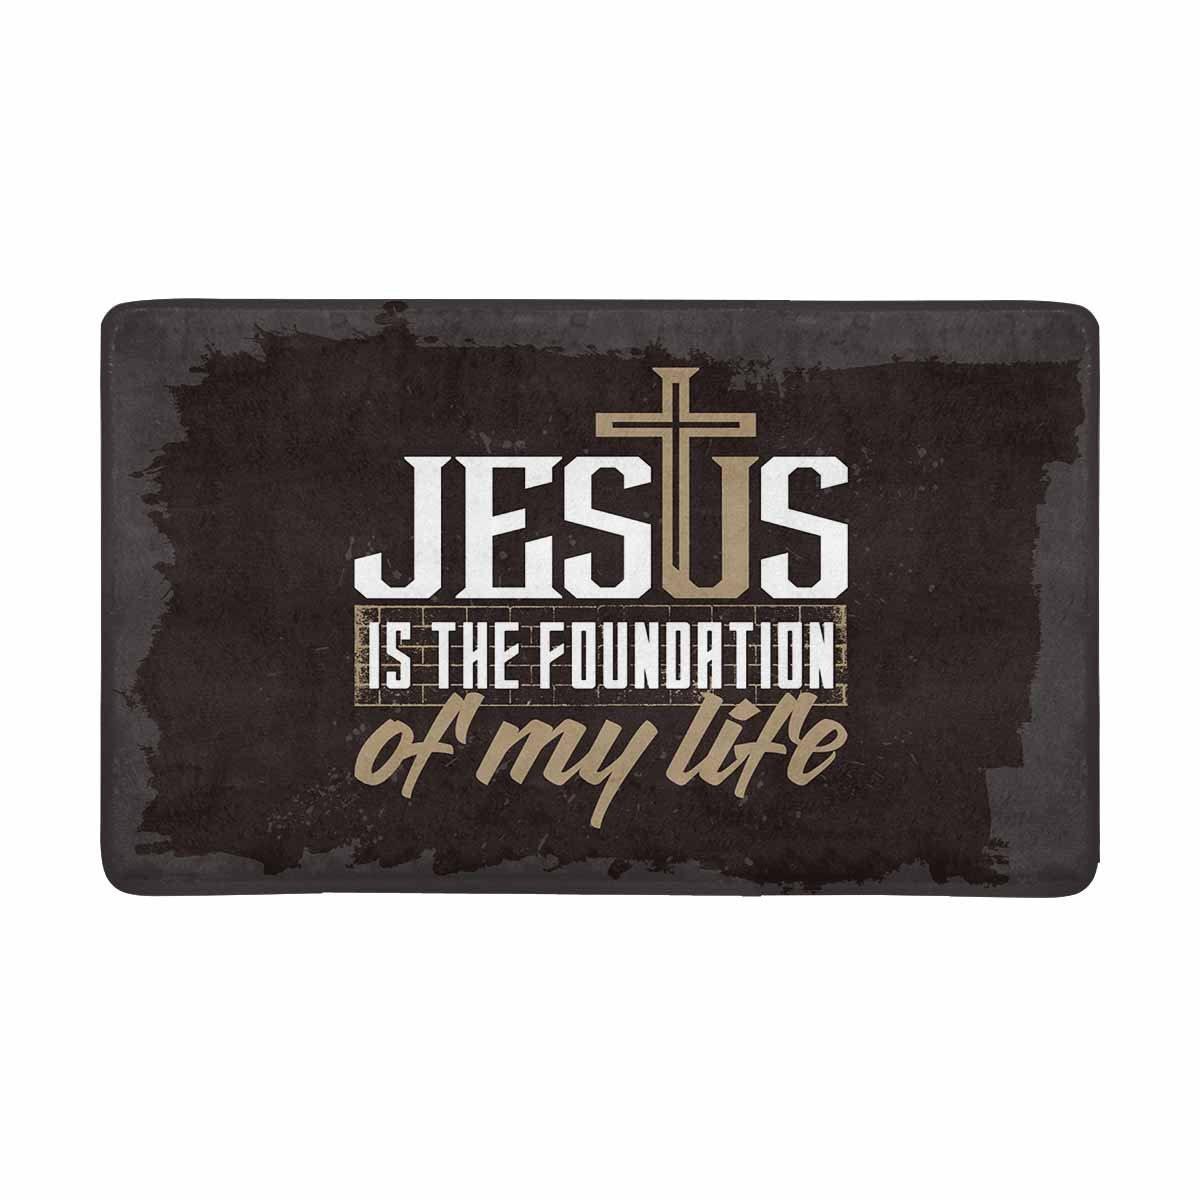 InterestPrint Bible Lettering Christian Jesus Is Foundation of My Life Doormat Indoor Outdoor Entrance Rug Floor Mats Shoe Scraper Door Mat Non-Slip Home Decor, Rubber Backing Large 30''(L) x 18''(W) by InterestPrint